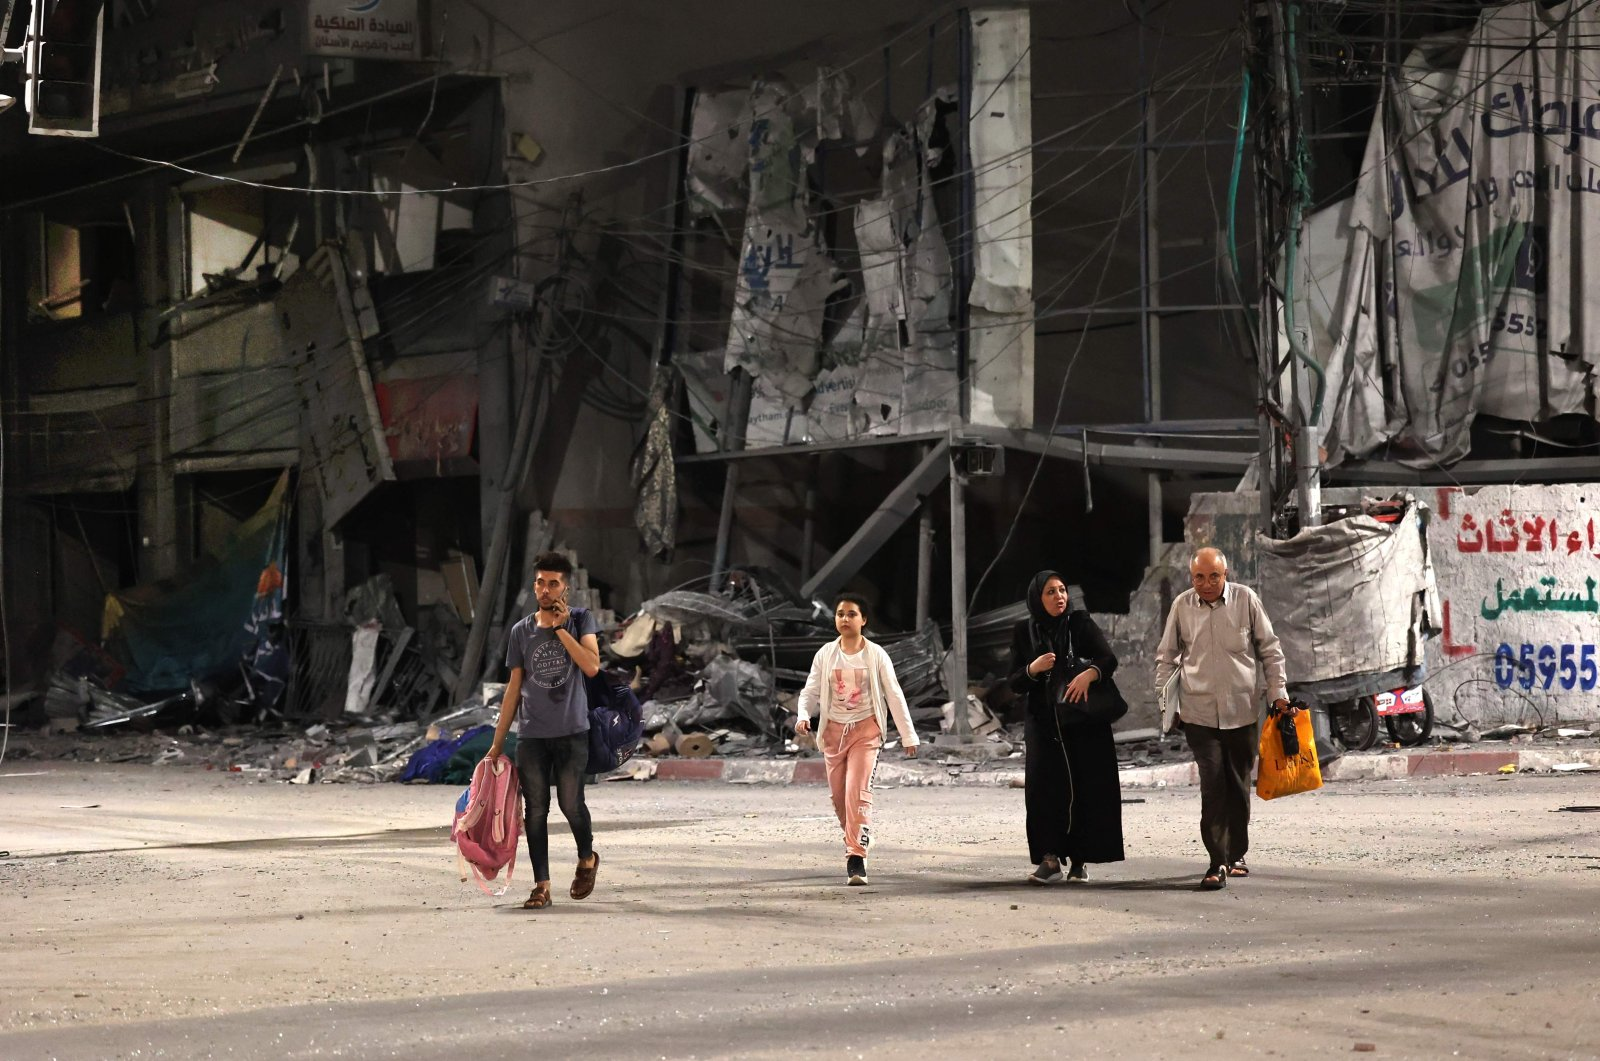 Palestinian families are pictured in a street after evacuating their homes east of Gaza City on May 13, 2021, due to heavy shelling by the Israeli military. (AFP Photo)